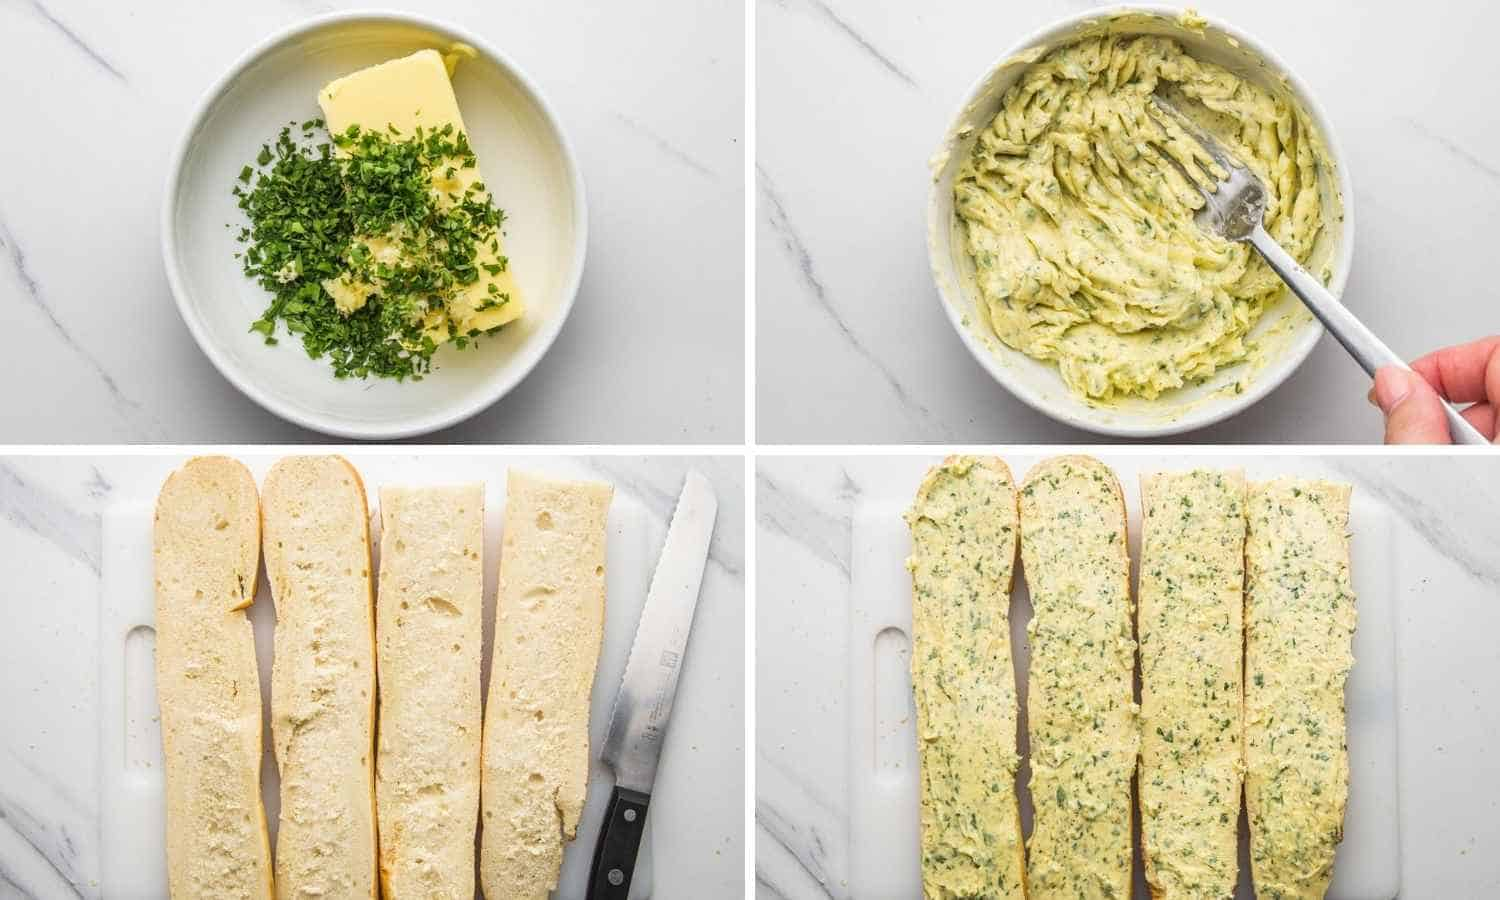 Collage of four images showing how to make the butter garlic spread, and spread it on the French bread baguette